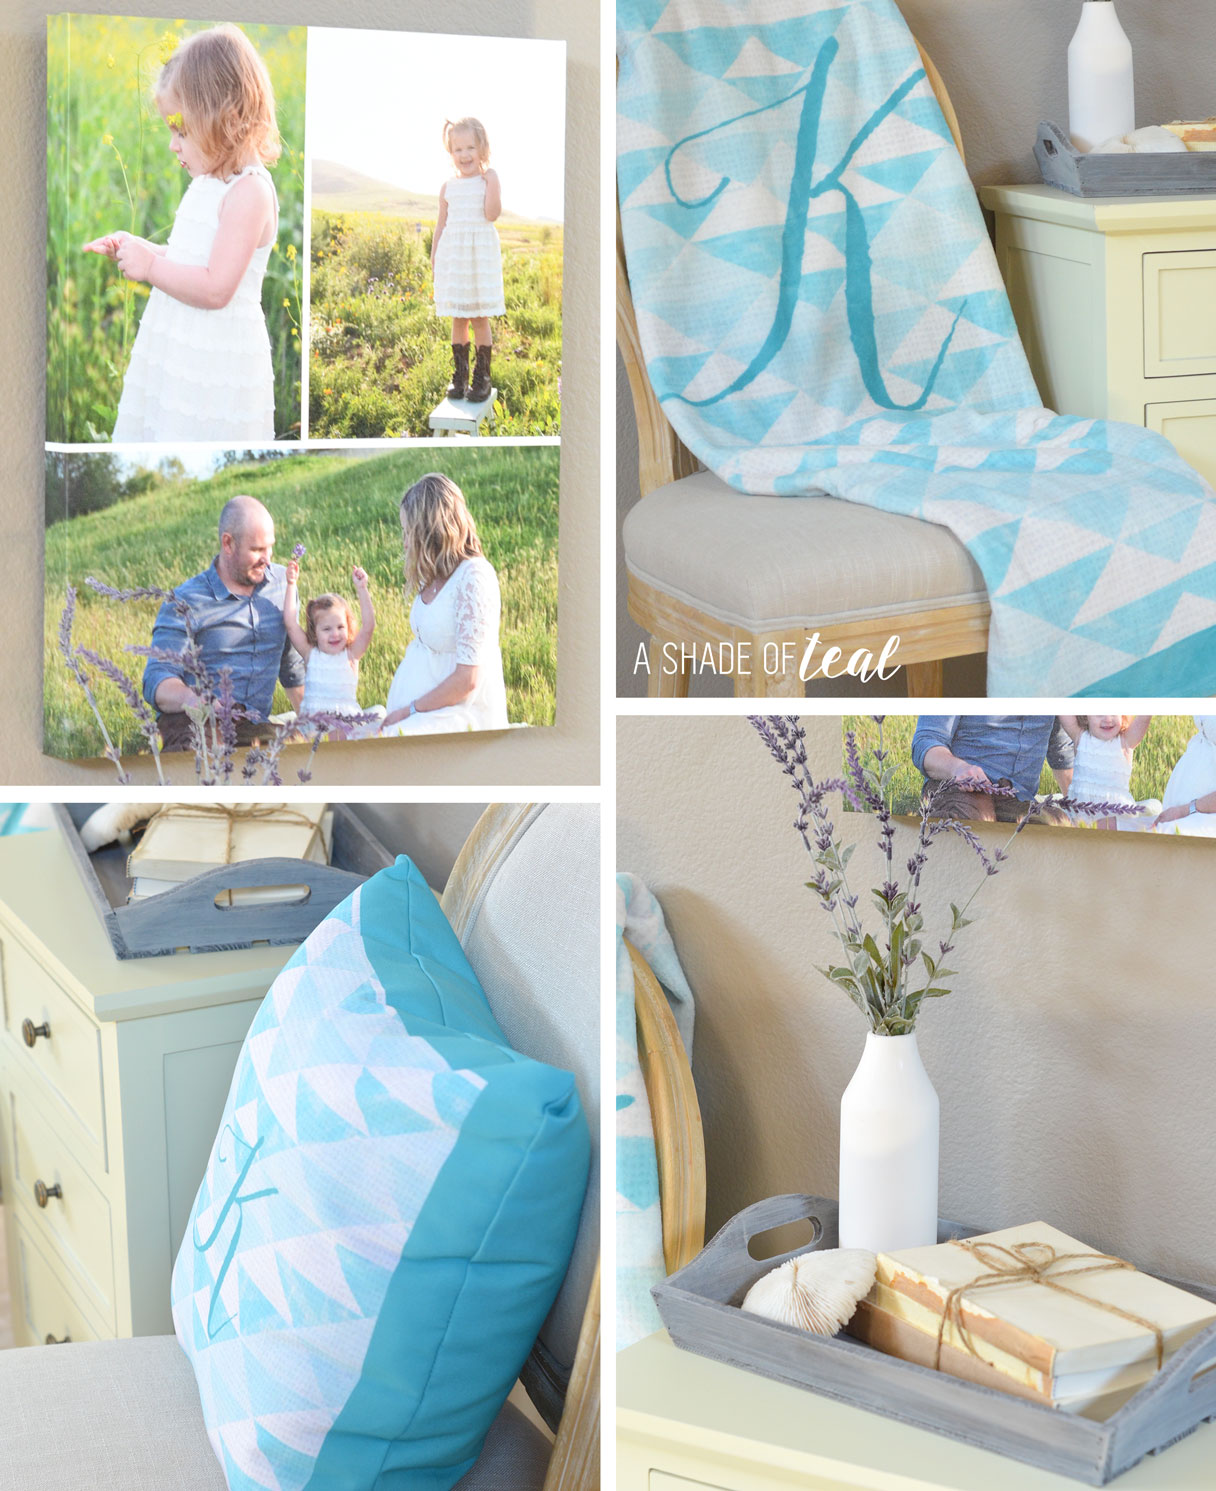 custom home decor with create art and gifts a shade of teal